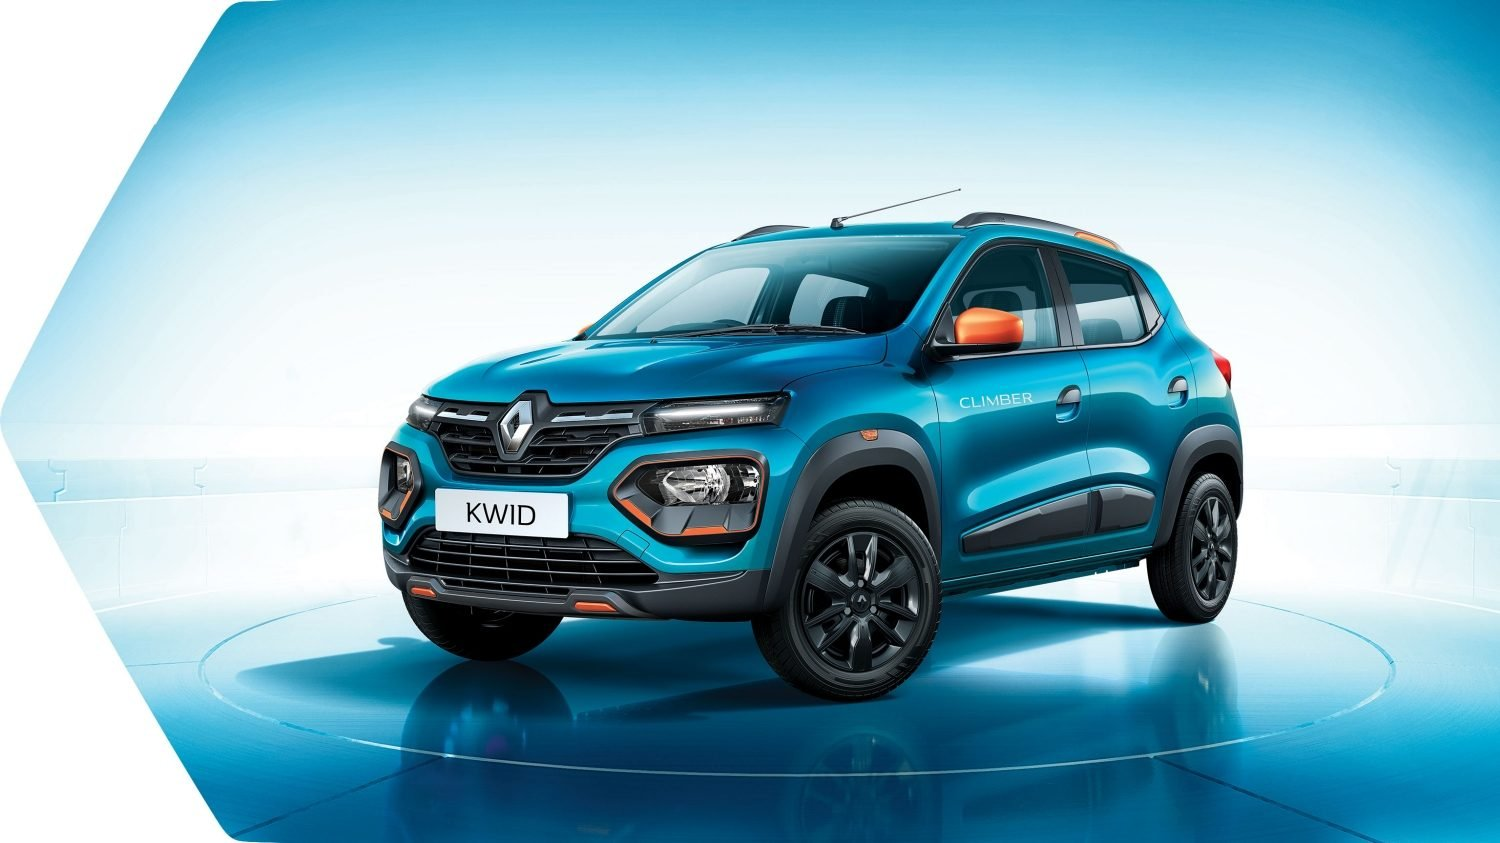 Highest Ground Clearance Cars In India - Renault Kwid